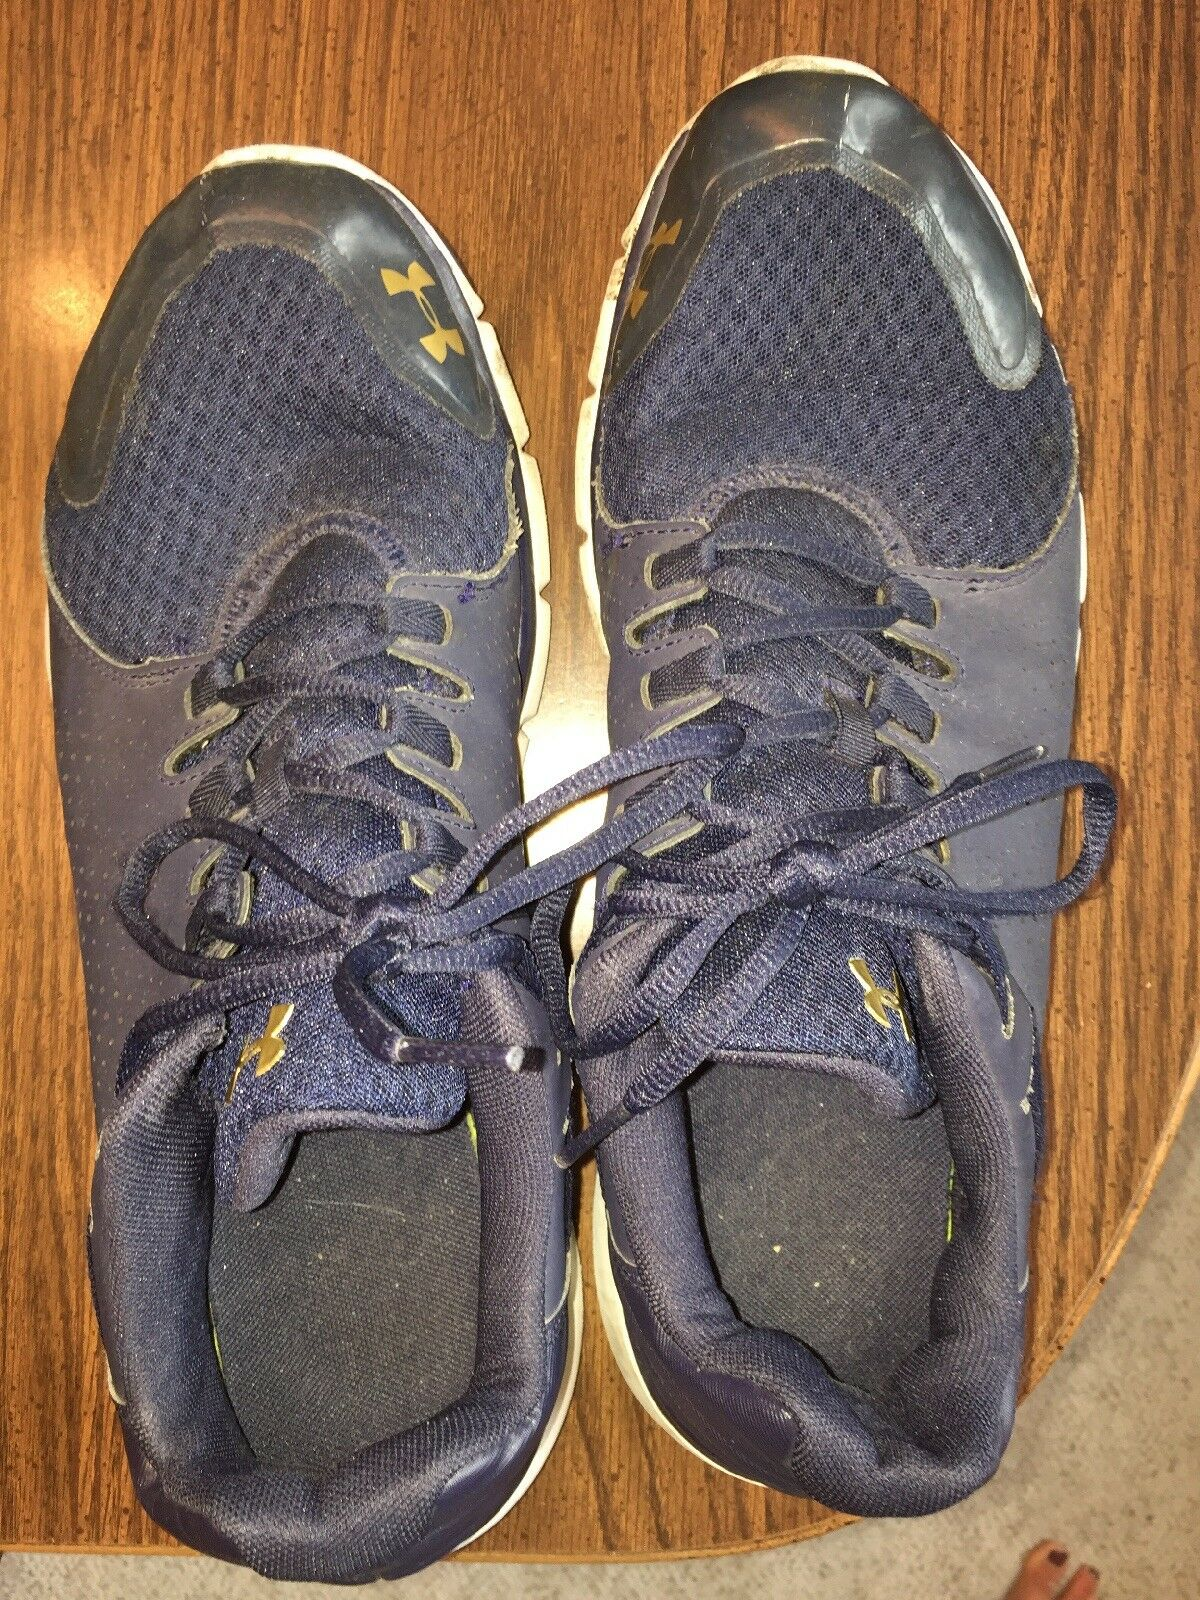 Under Armour Uomo's shoe size 13 with Notre Dame Gold themed color